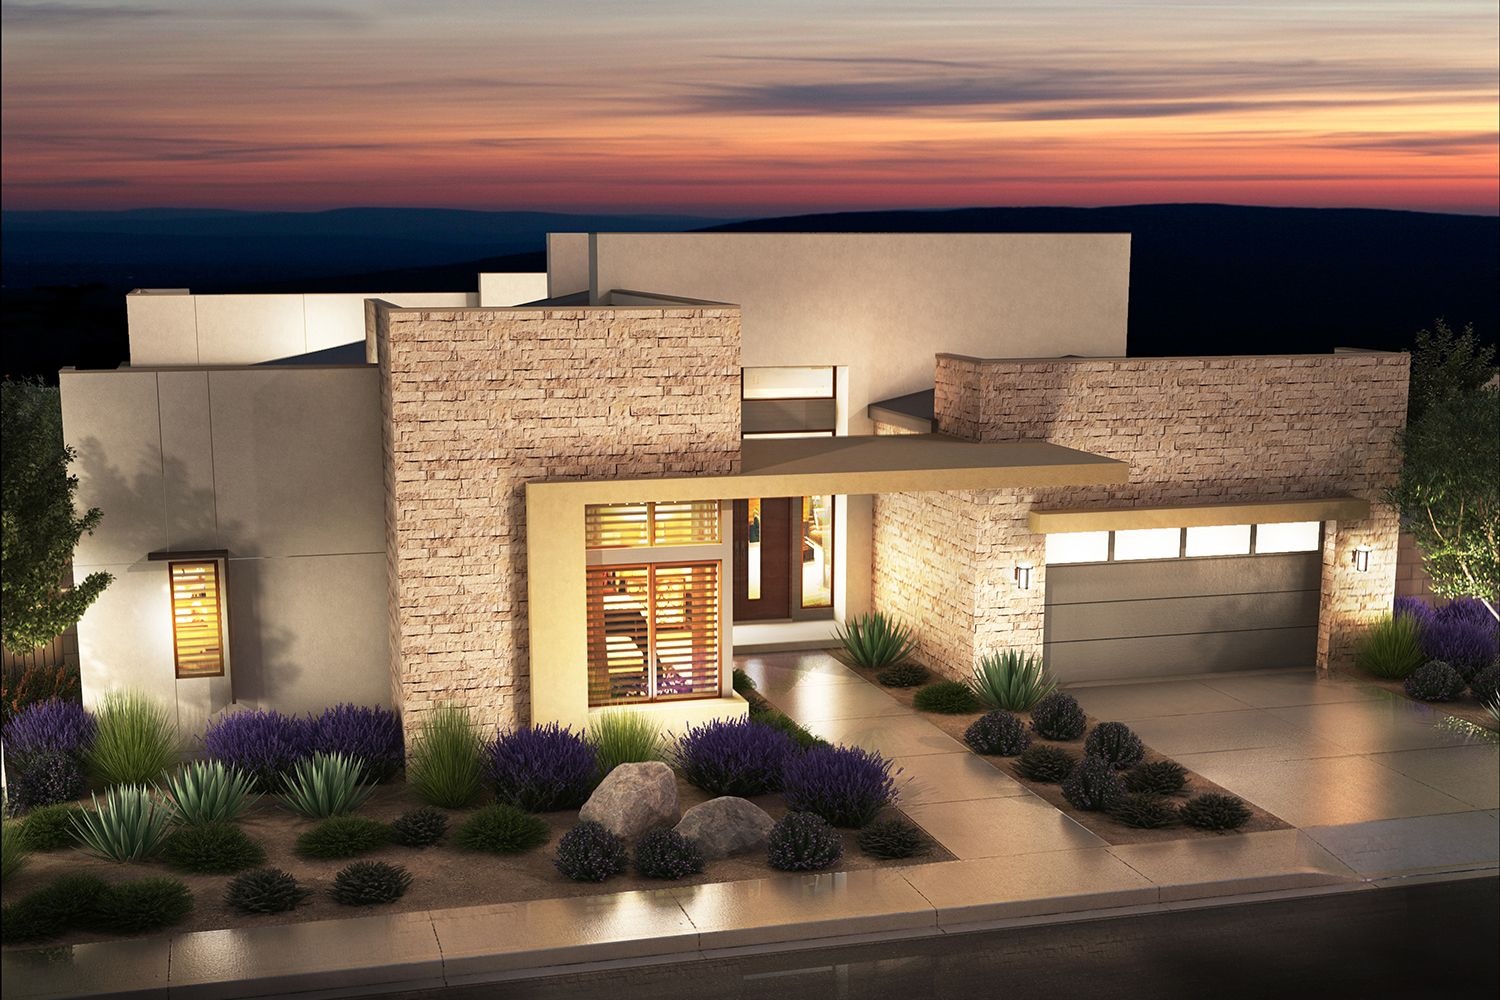 Axis, Anthem-Henderson, NV Homes & Land - Real Estate